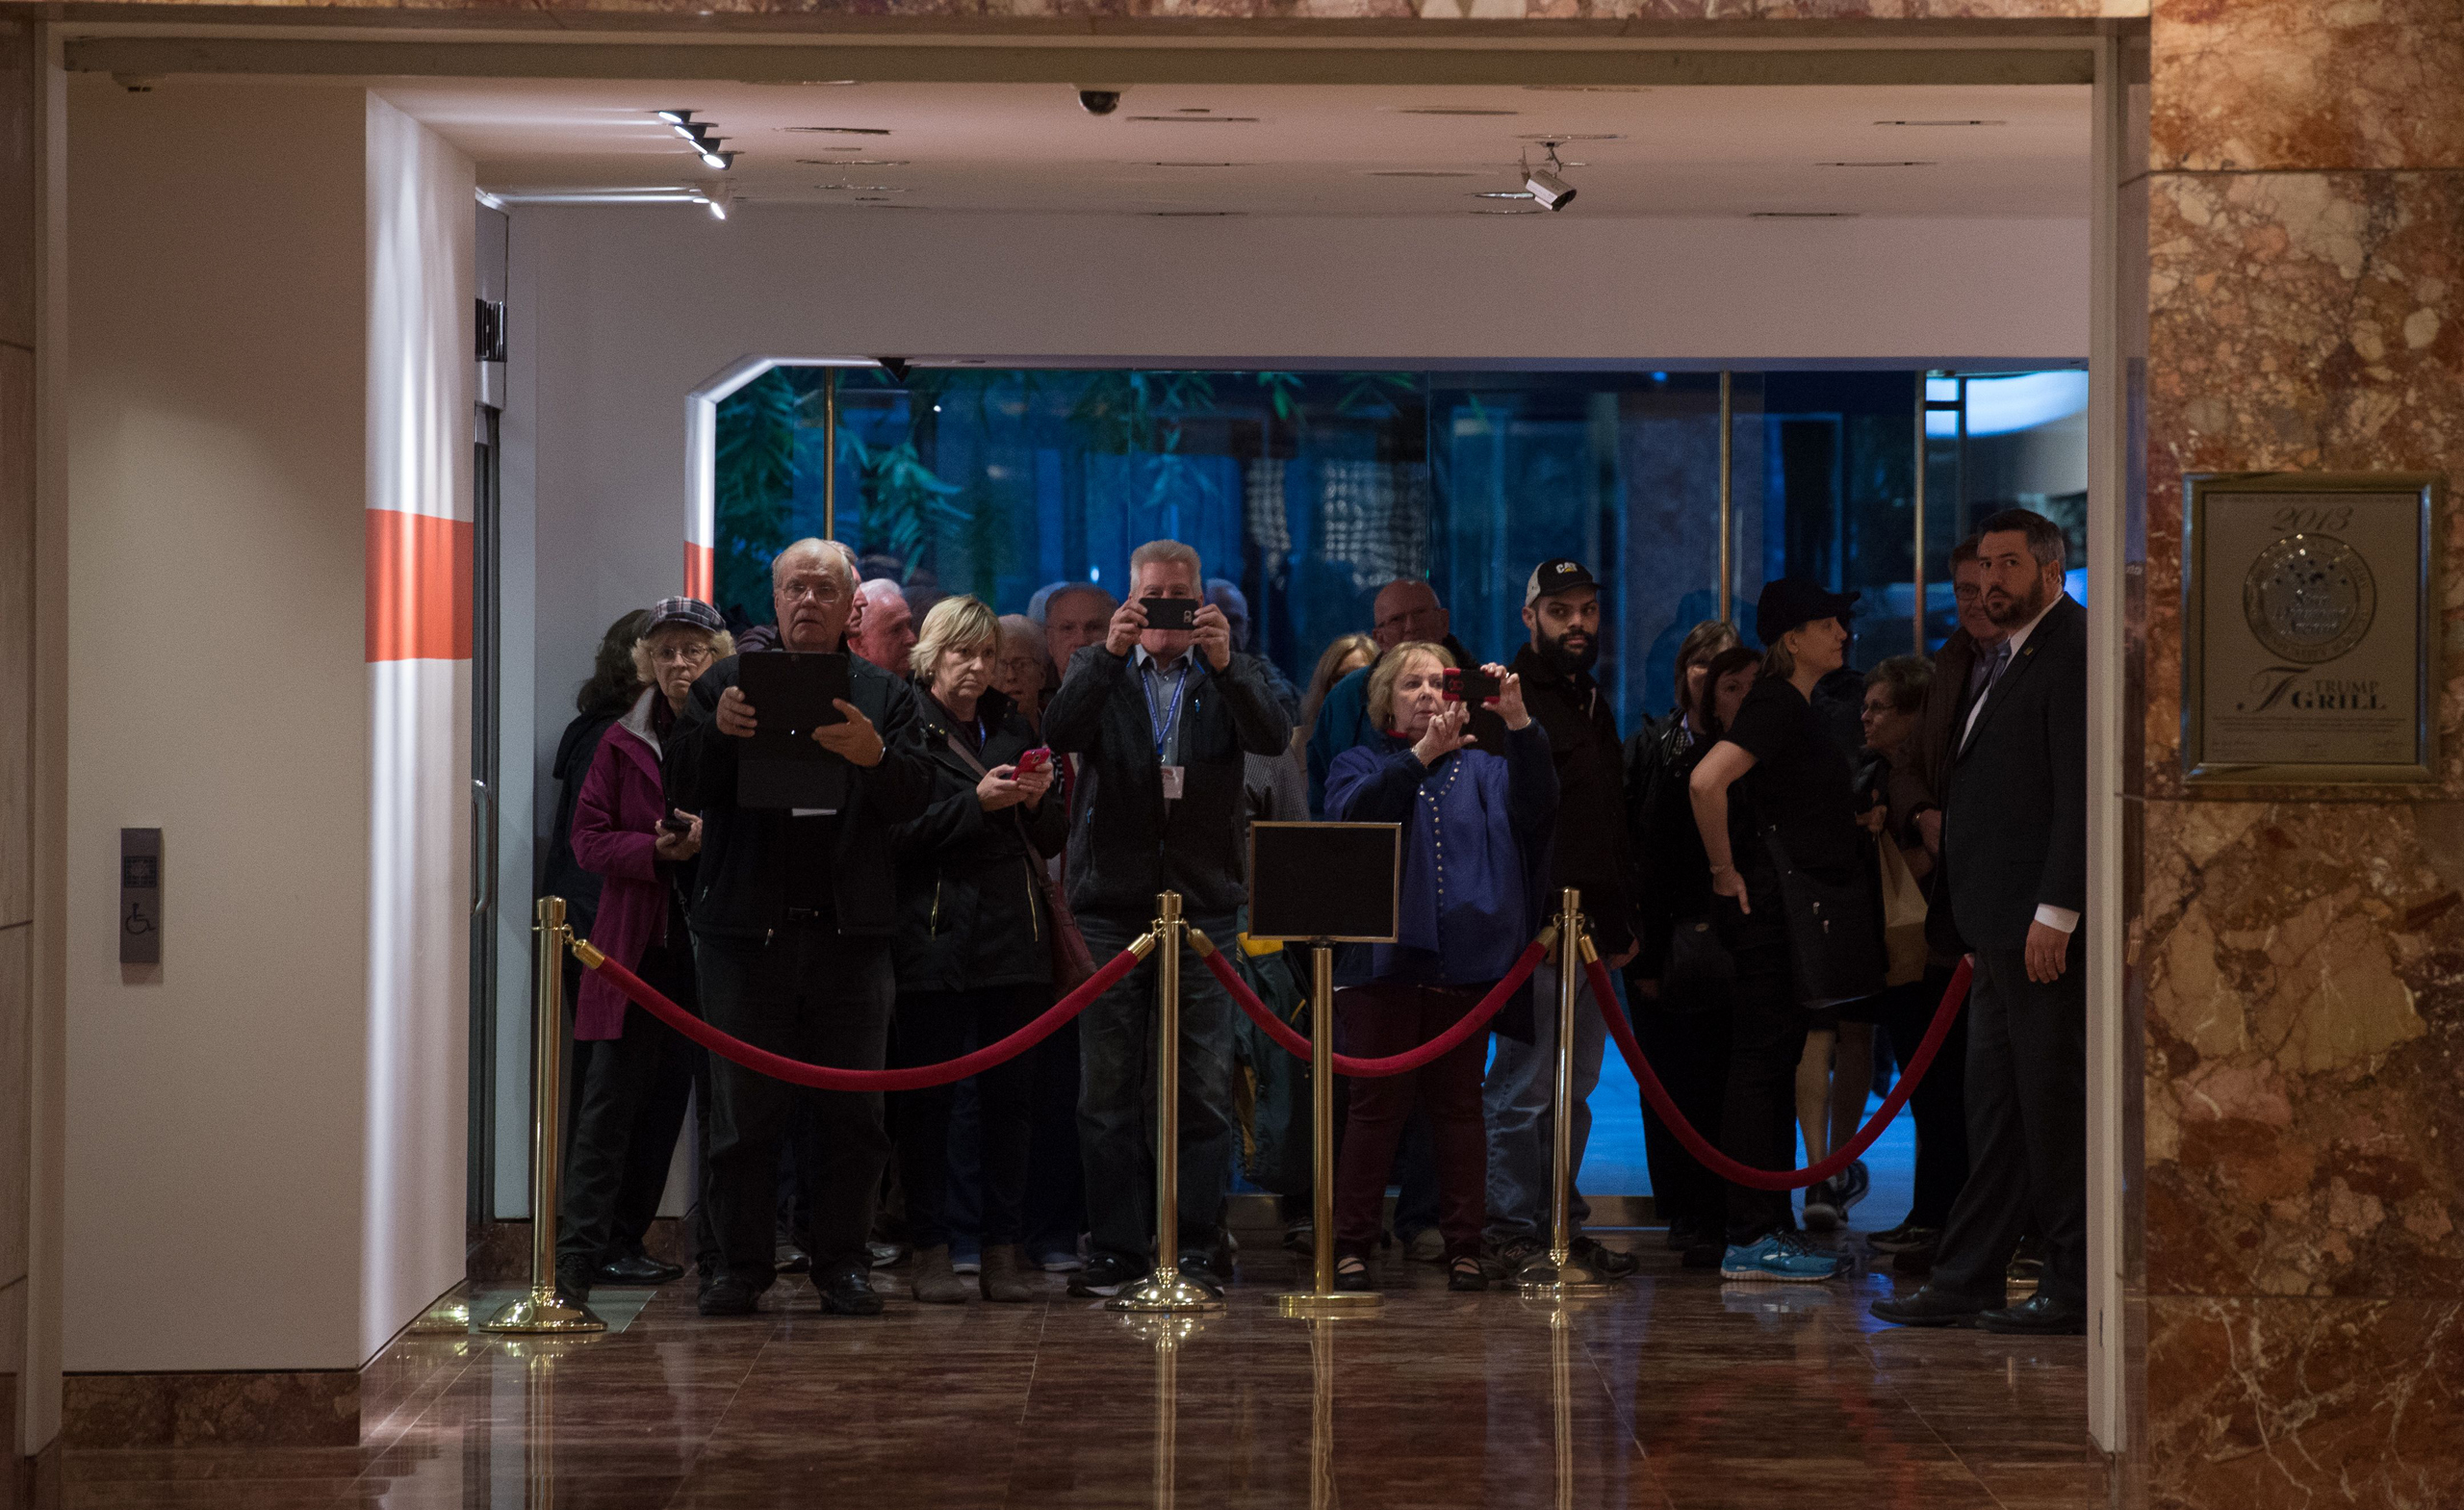 Visitors take photos from behind velvet ropes of the lobby in Trump Tower, on Nov. 13, 2016.